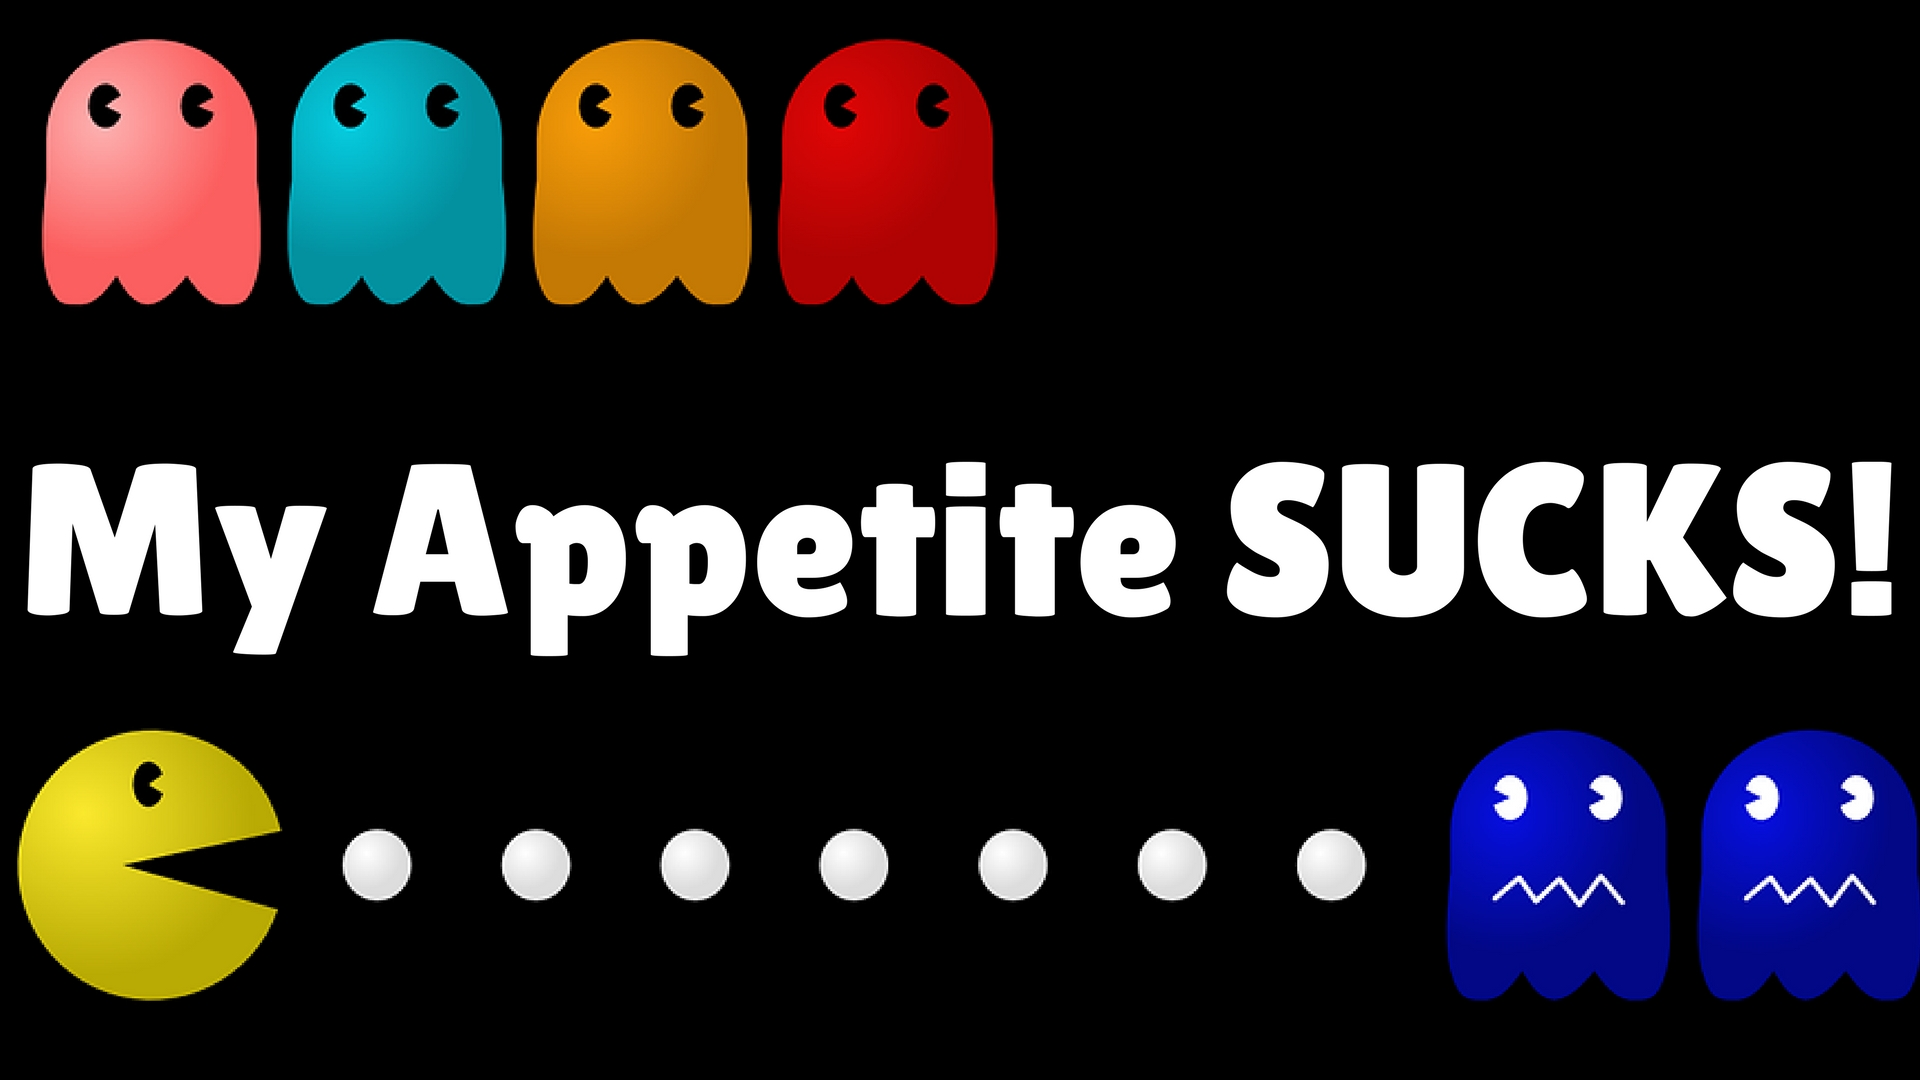 How To Increase Your Appetite Article Thumbnail - Pacman Eating Ghosts